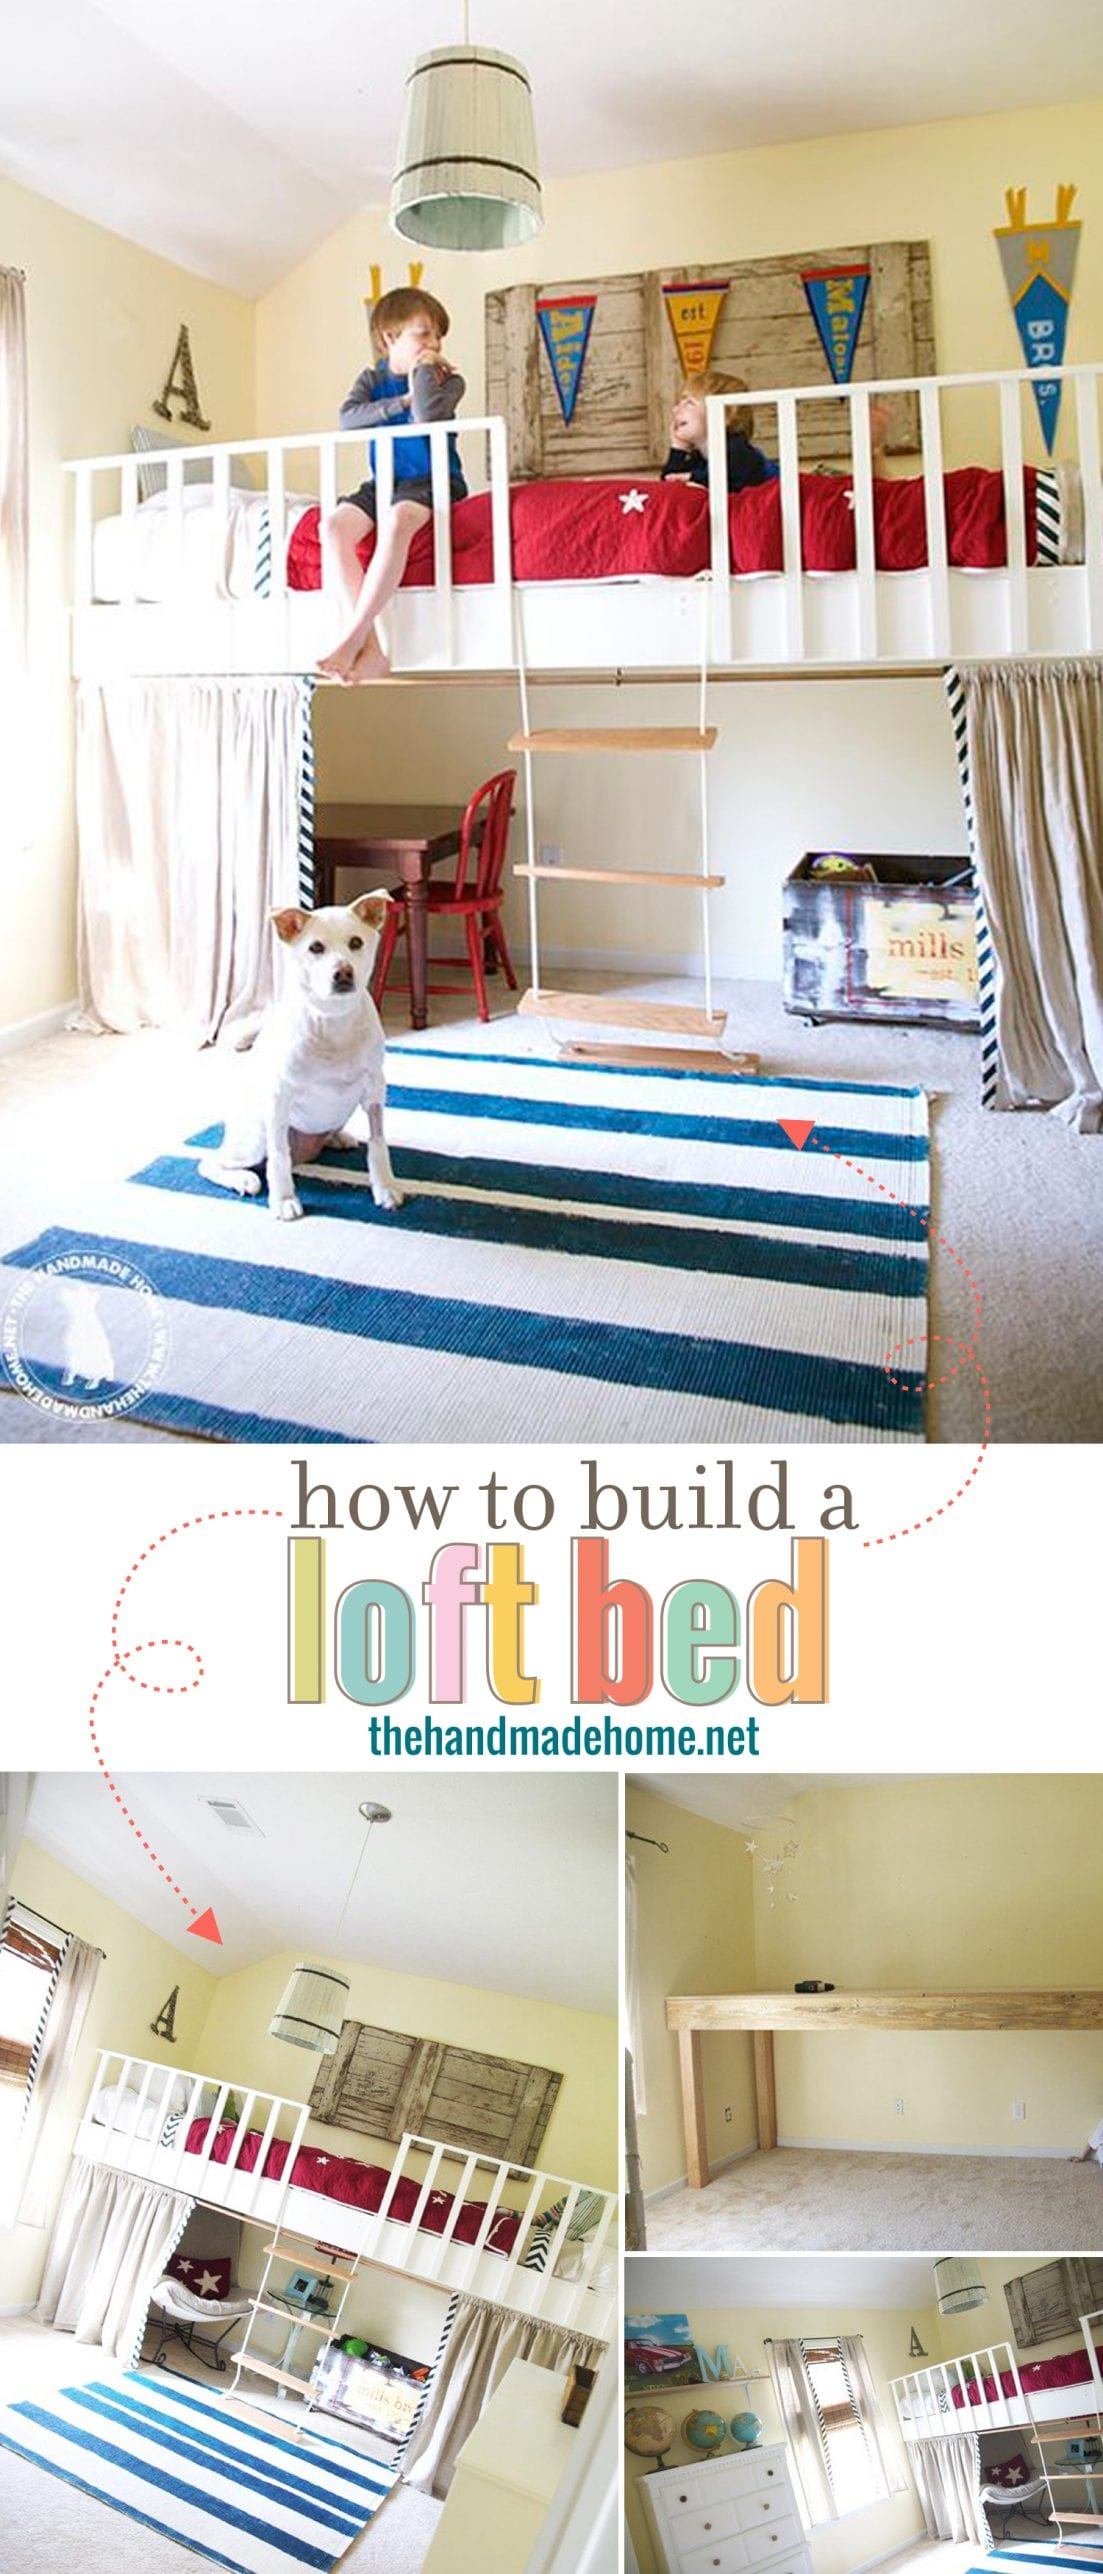 Bodacious How To Build A Loft Bed How To Build A Loft Bed Storage How To Build A Loft Bed From Pallets Stairs houzz 01 How To Build A Loft Bed